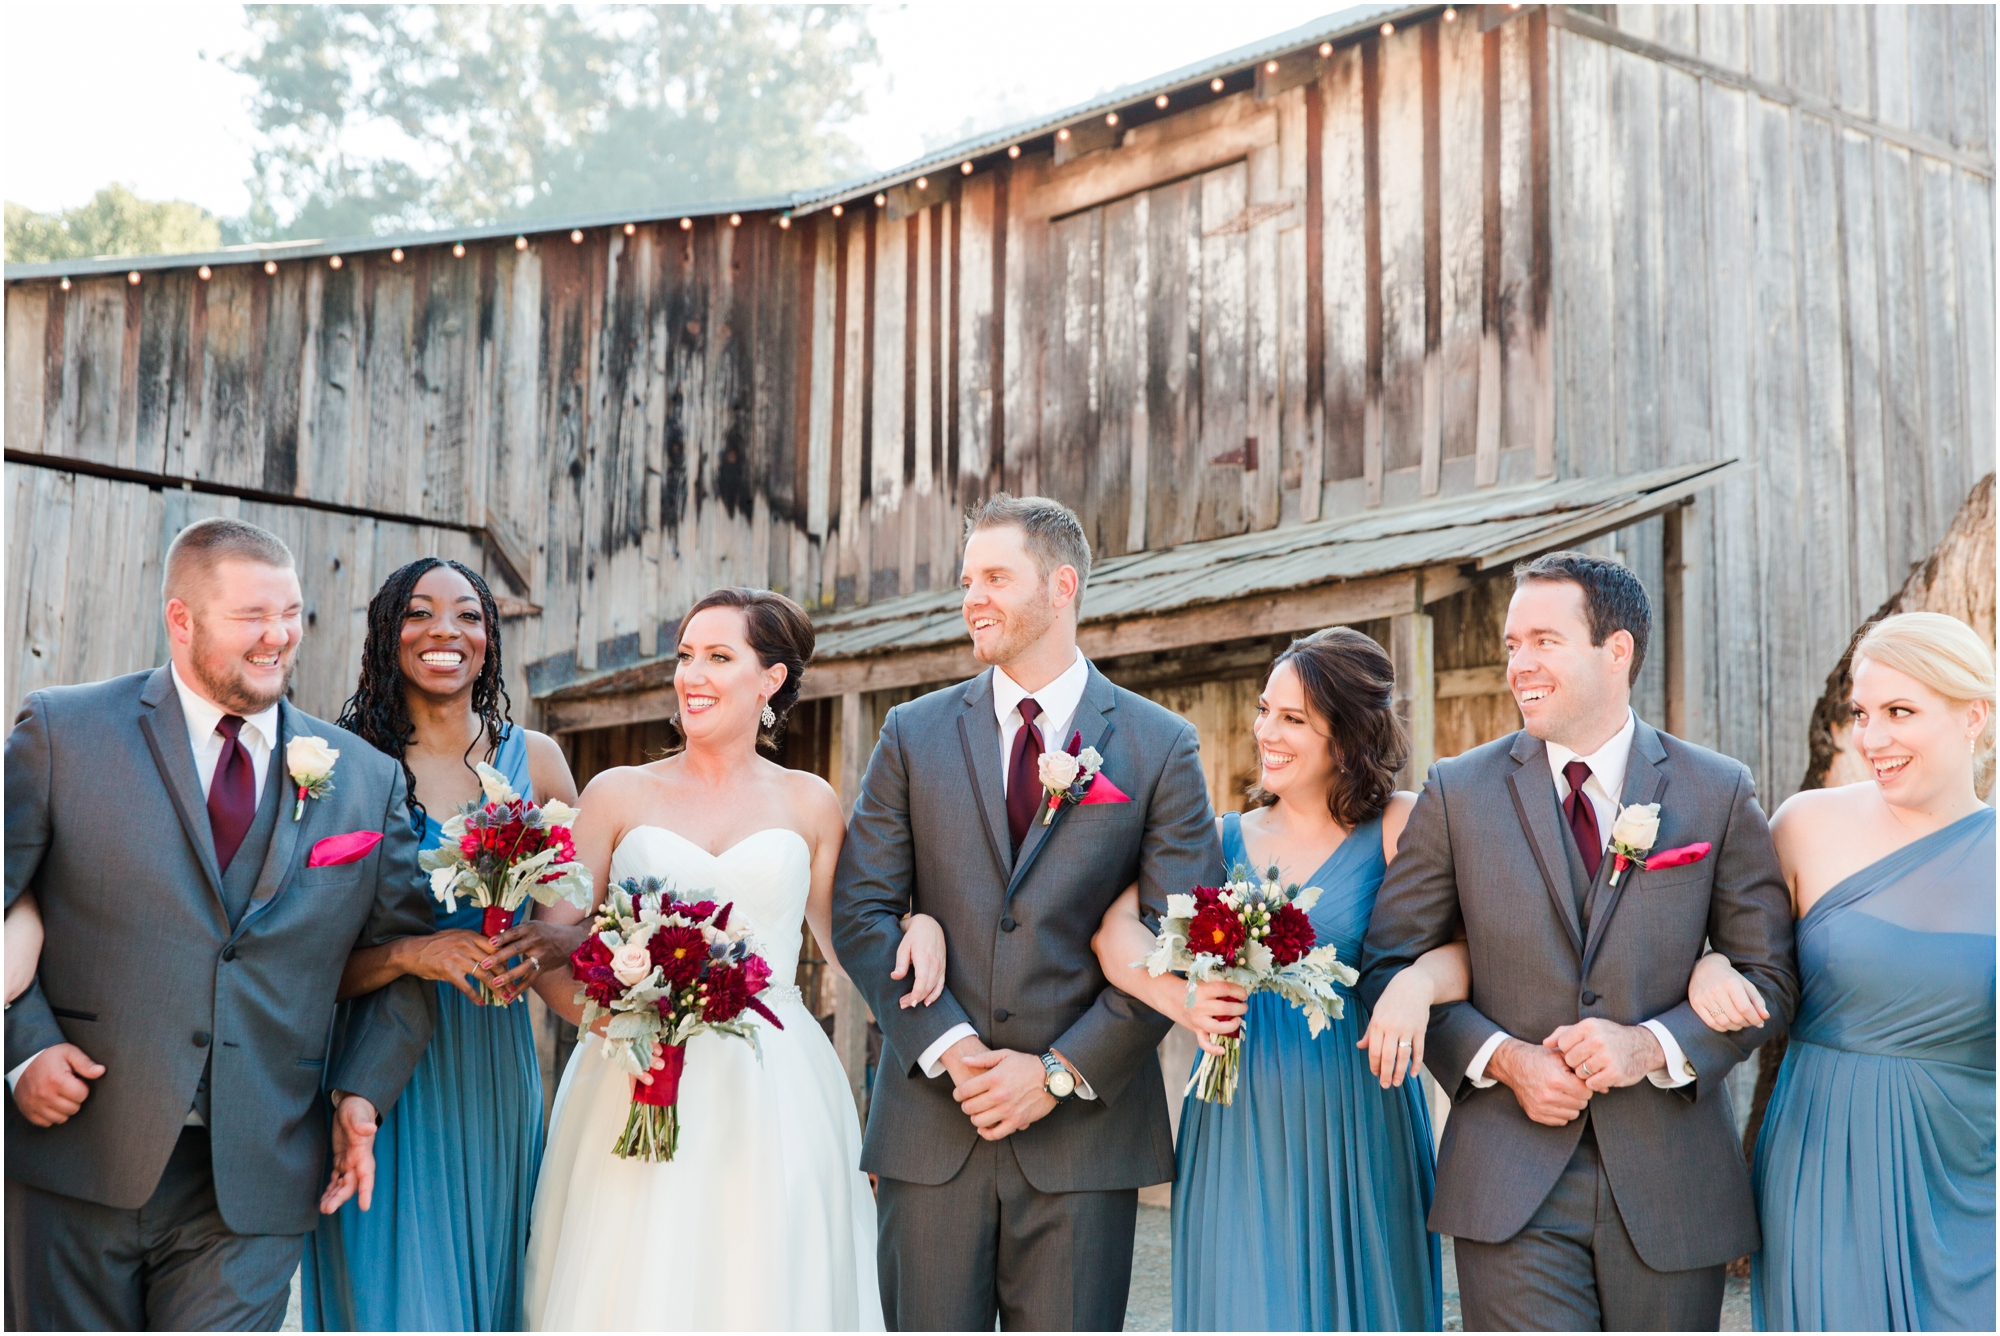 Picchetti Winery wedding pictures by Briana Calderon Photography_0445.jpg